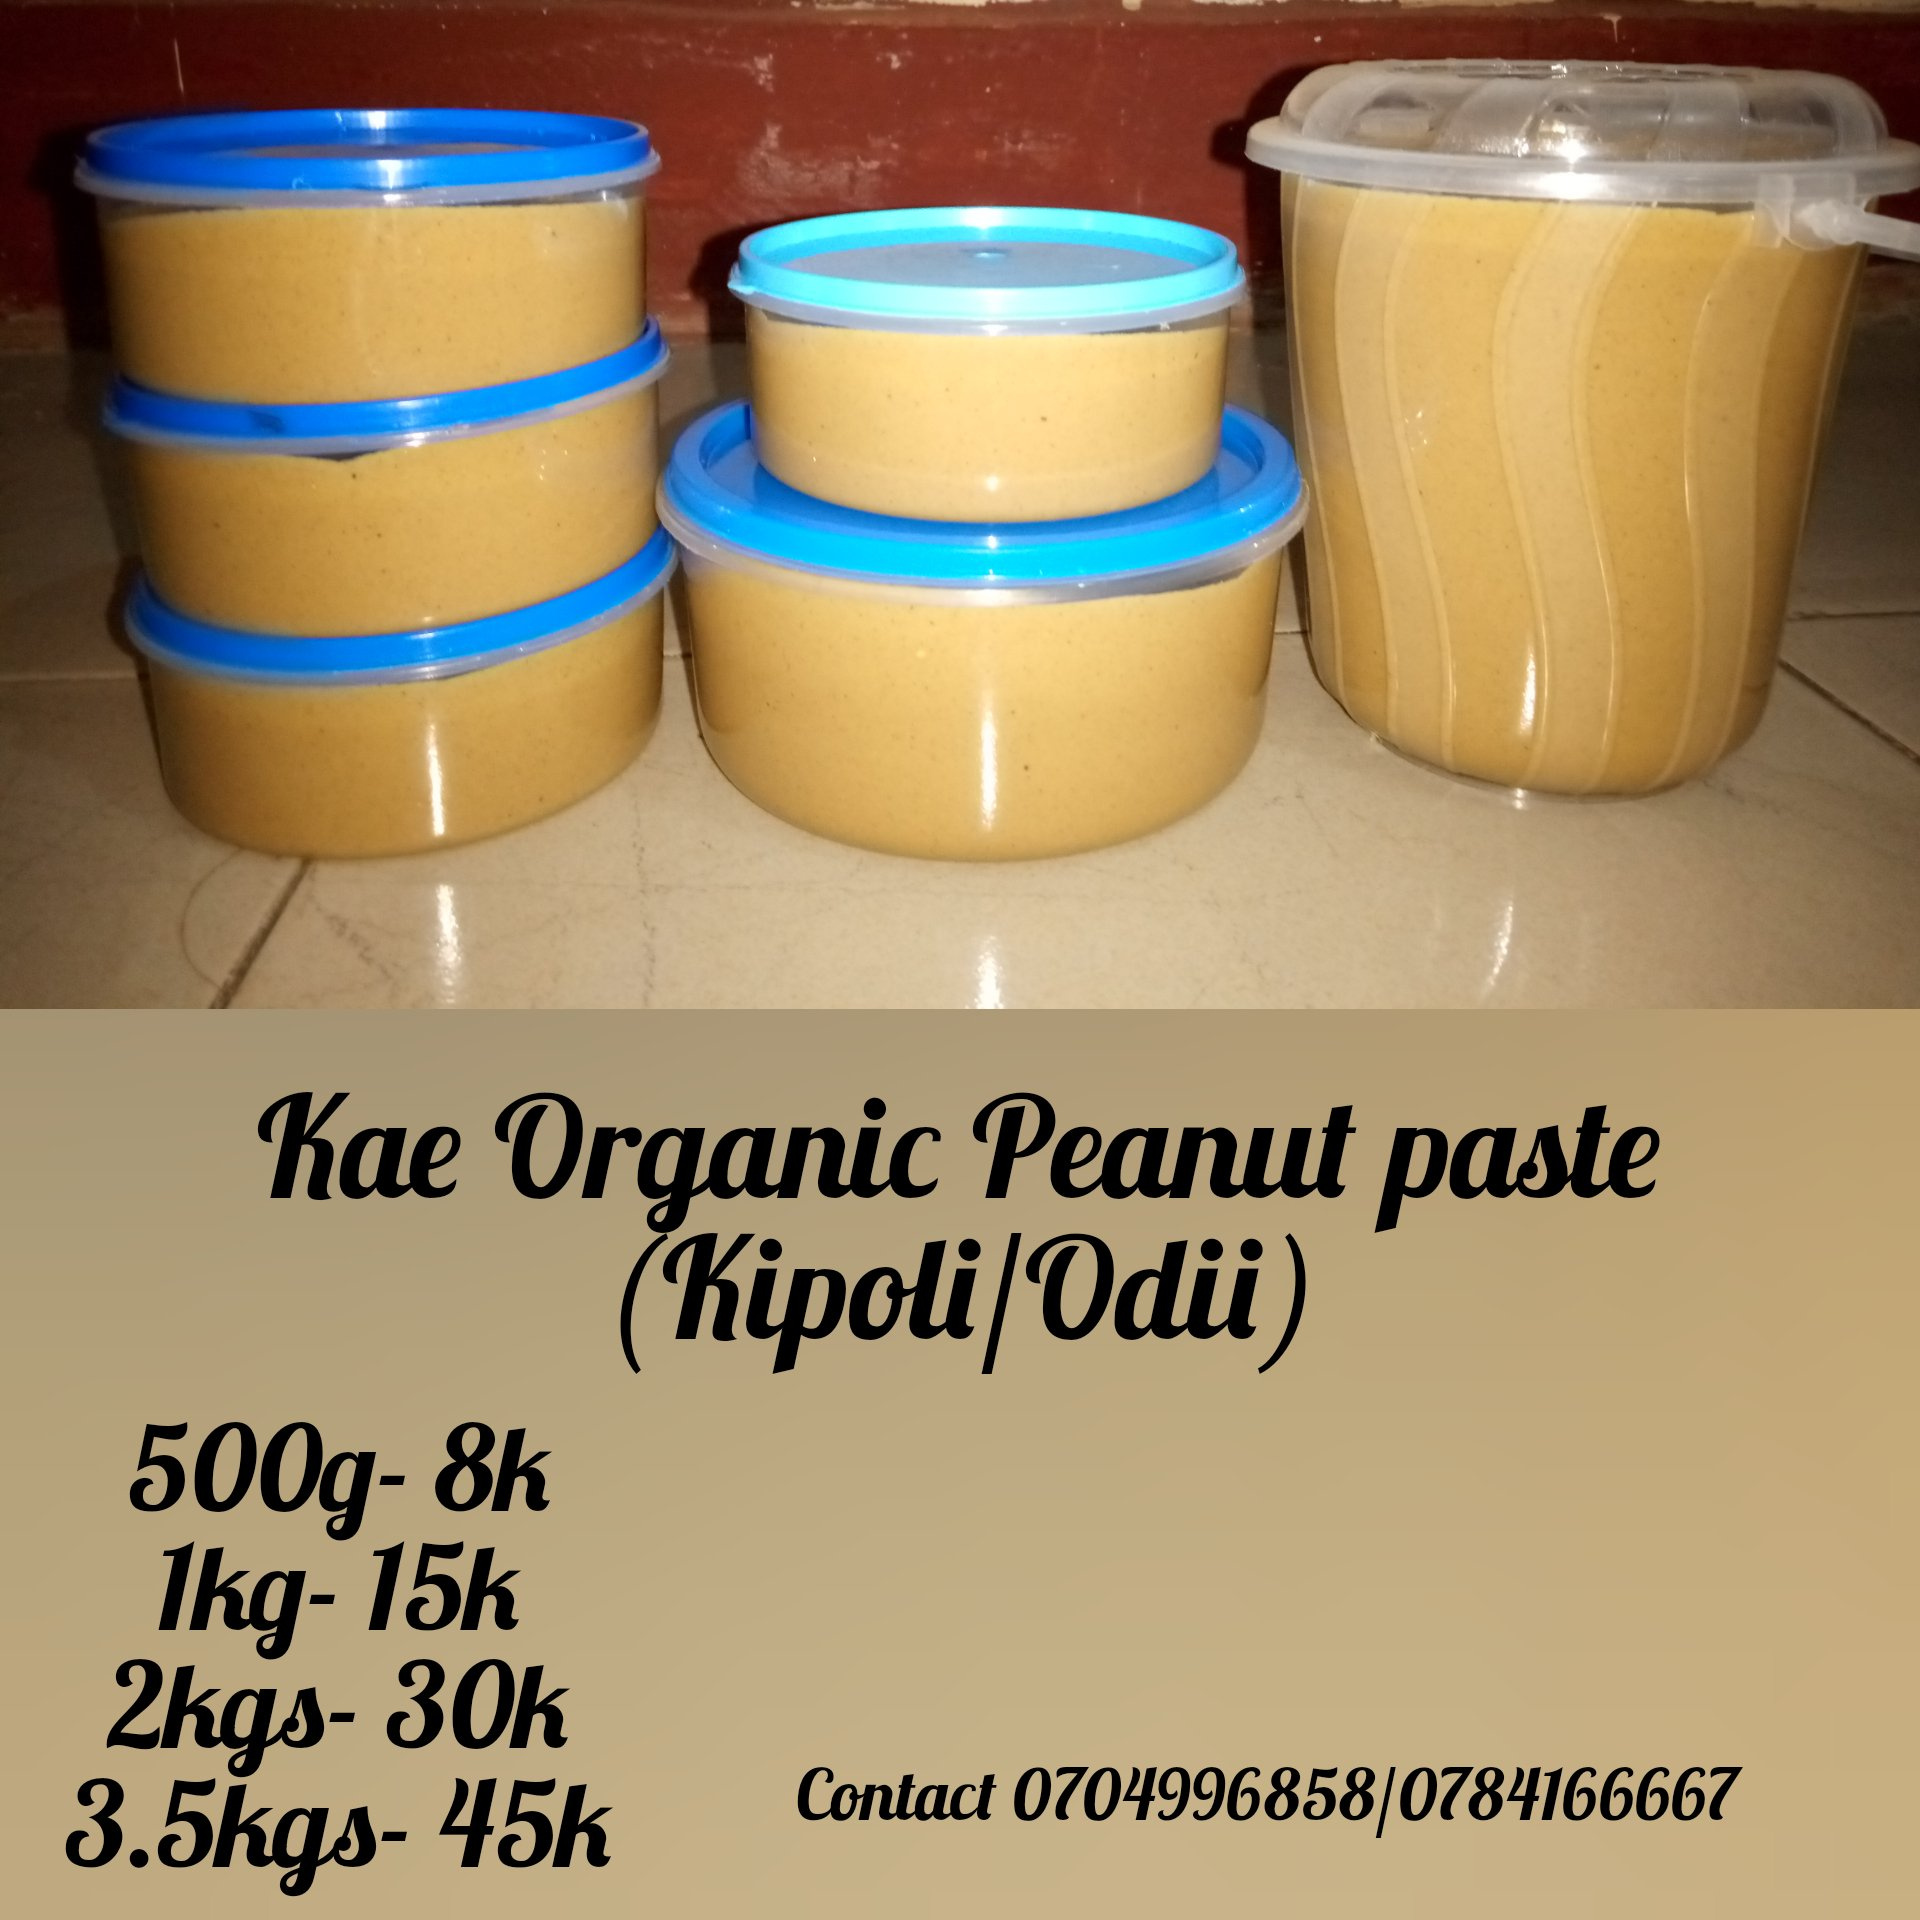 Kae Snacks On Twitter Did You Know Peanut Butter Kipoli Is The Best Additive To Your Snacks For Instance You Can Eat With Bananas Bread Mandazi Buns Even Cookies Please Contact